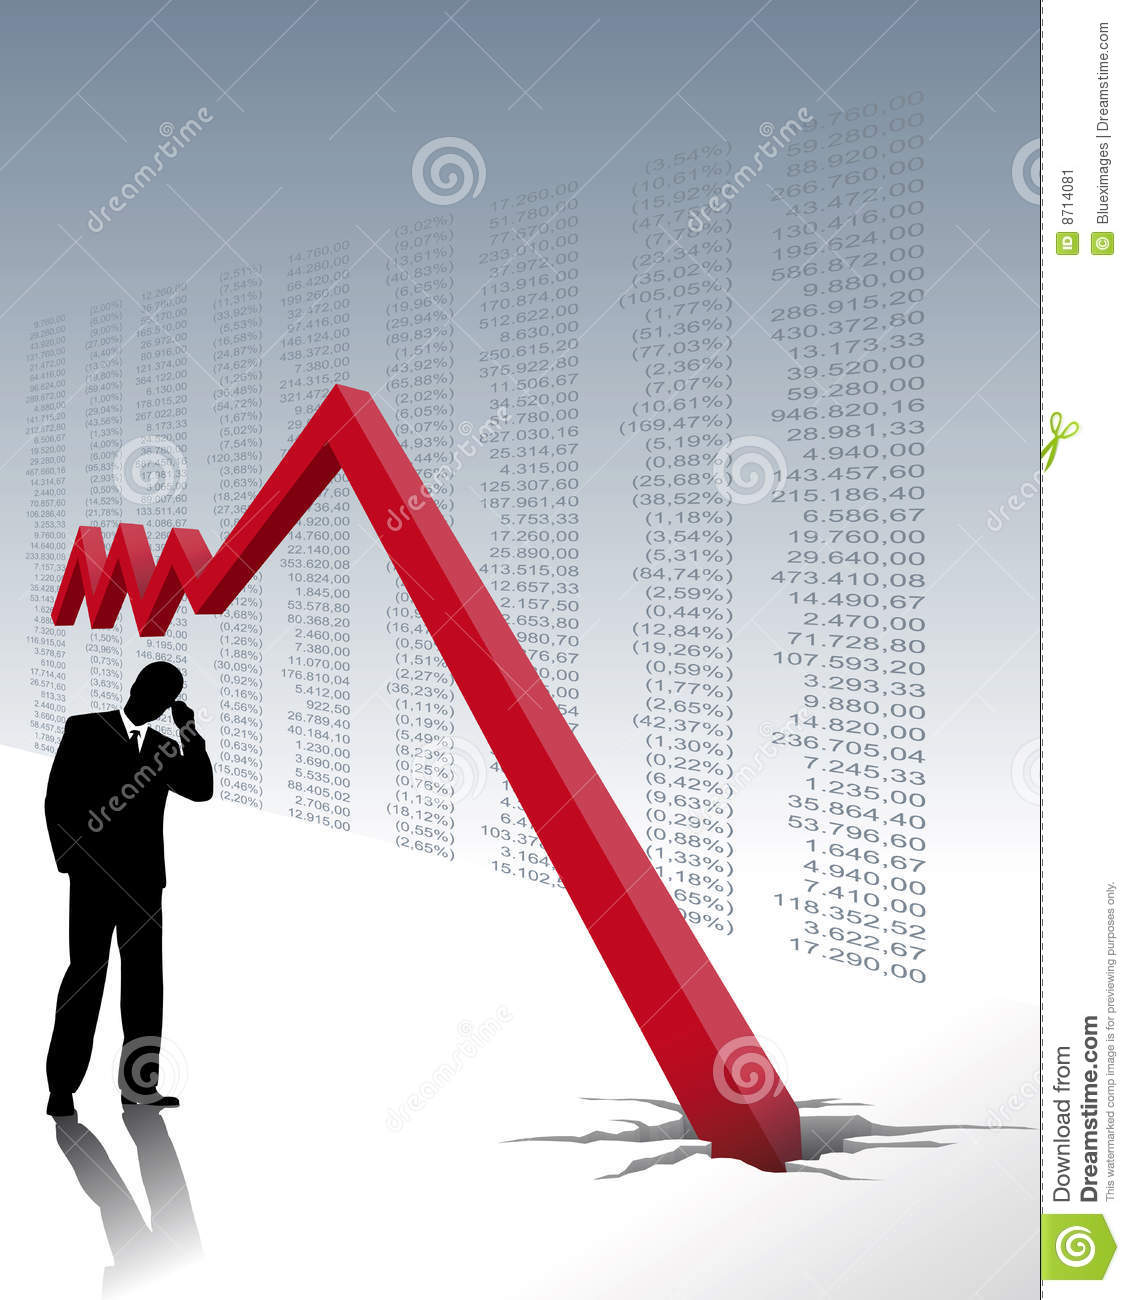 An introduction to the stock market crash